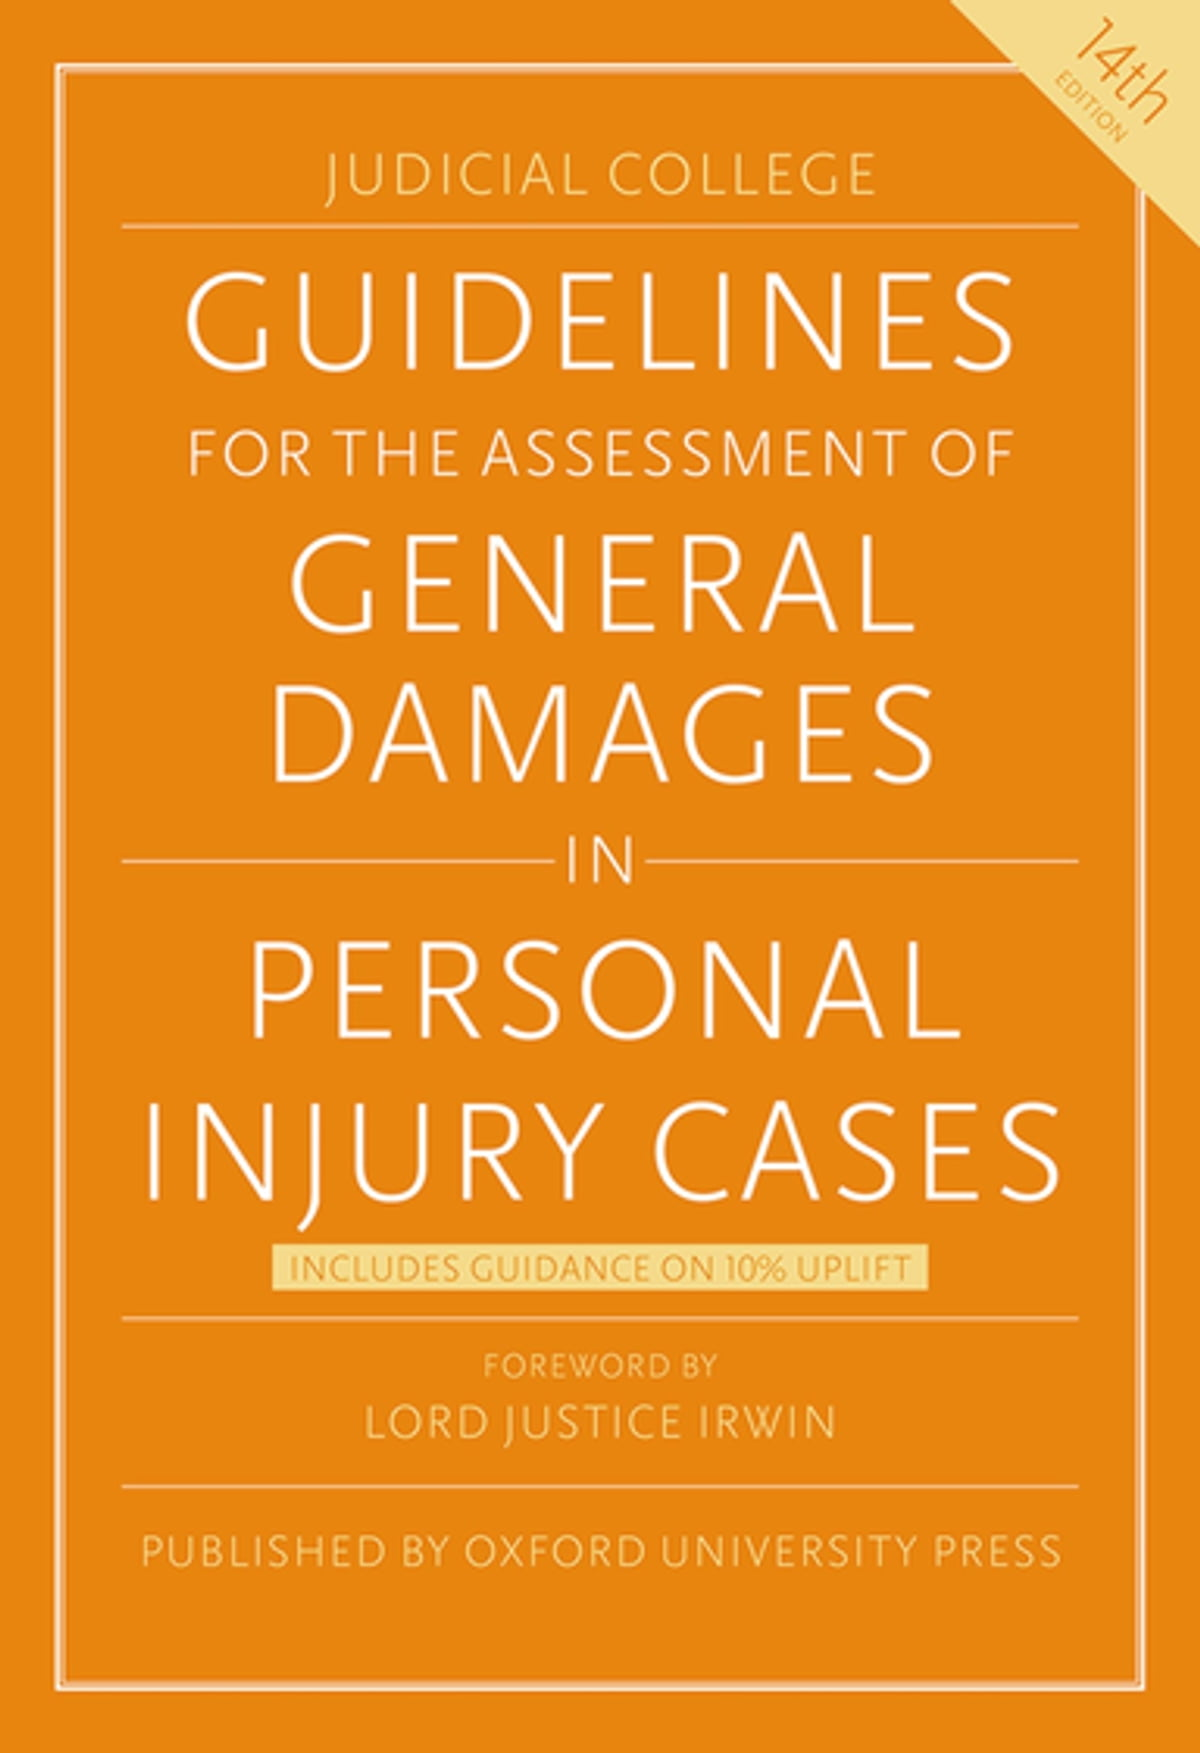 Guidelines for the Assessment of General Damages in Personal Injury Cases  eBook by Judicial College - 9780192545817 | Rakuten Kobo